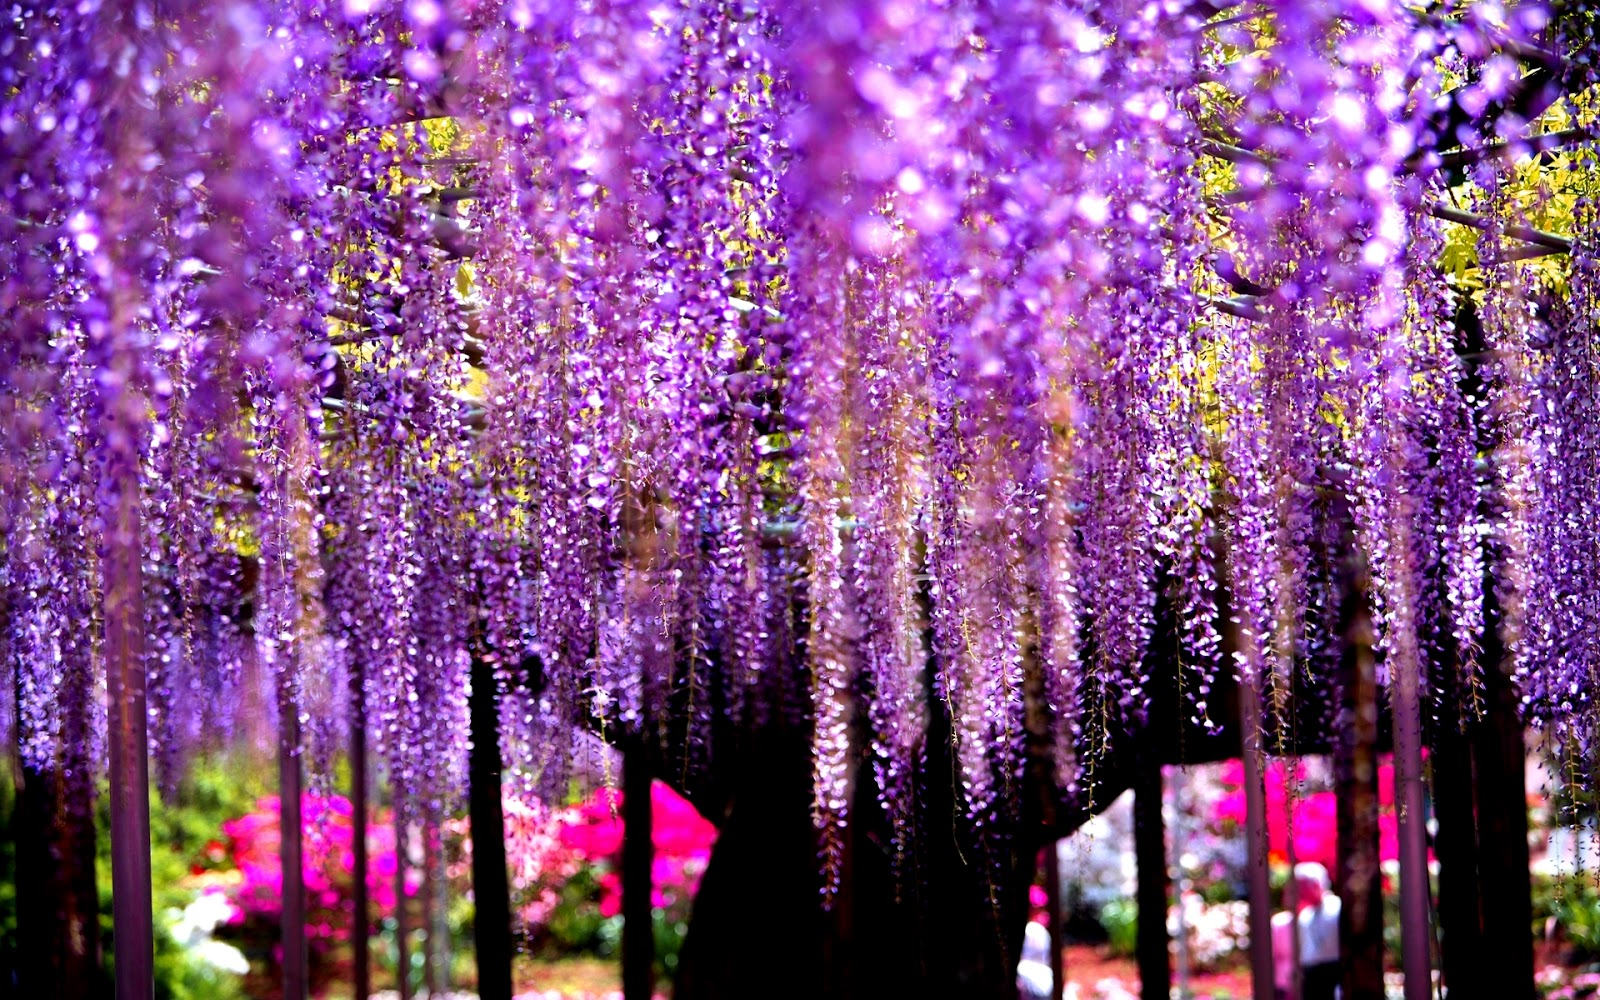 Wallpaper Wisteria Tree Is Extreem Beauty Of Nature